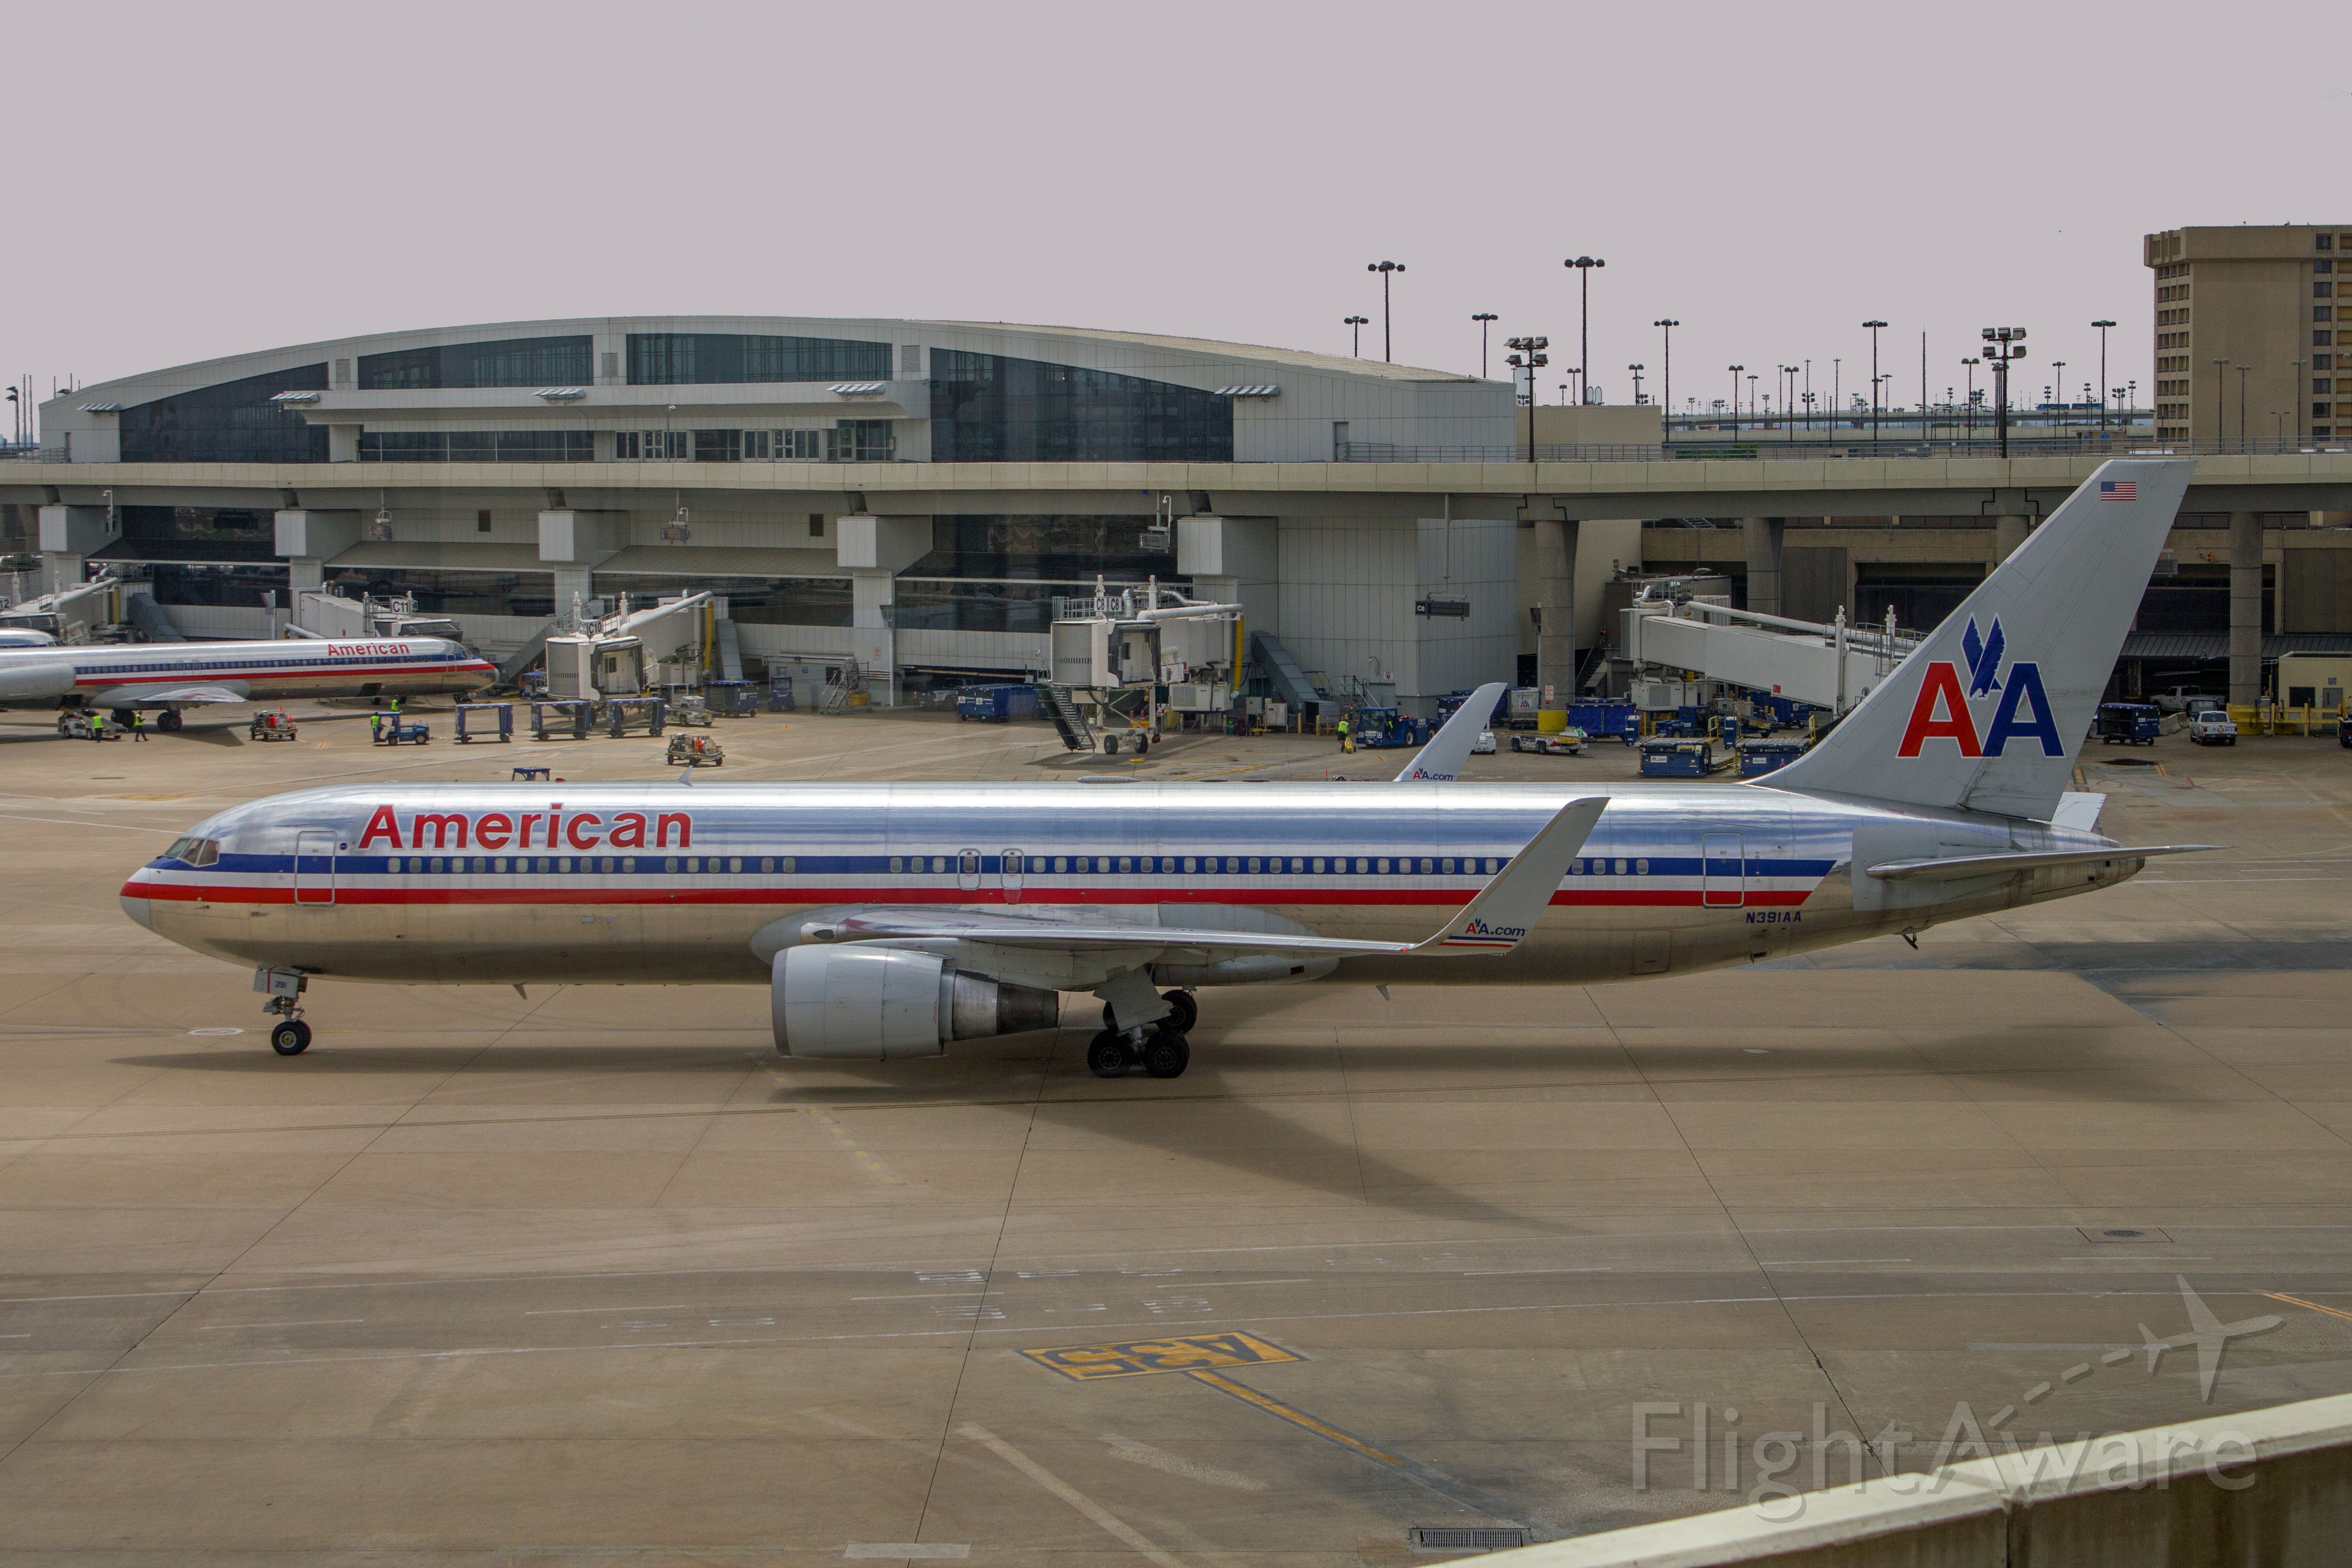 """BOEING 767-300 (N391AA) - American Airlines, N391AA, Boeing 767-323ER, msn 27451, Photo by John A. Miller, <a rel=""""nofollow"""" href=""""http://www.PhotoEnrichments.com"""">www.PhotoEnrichments.com</a>"""